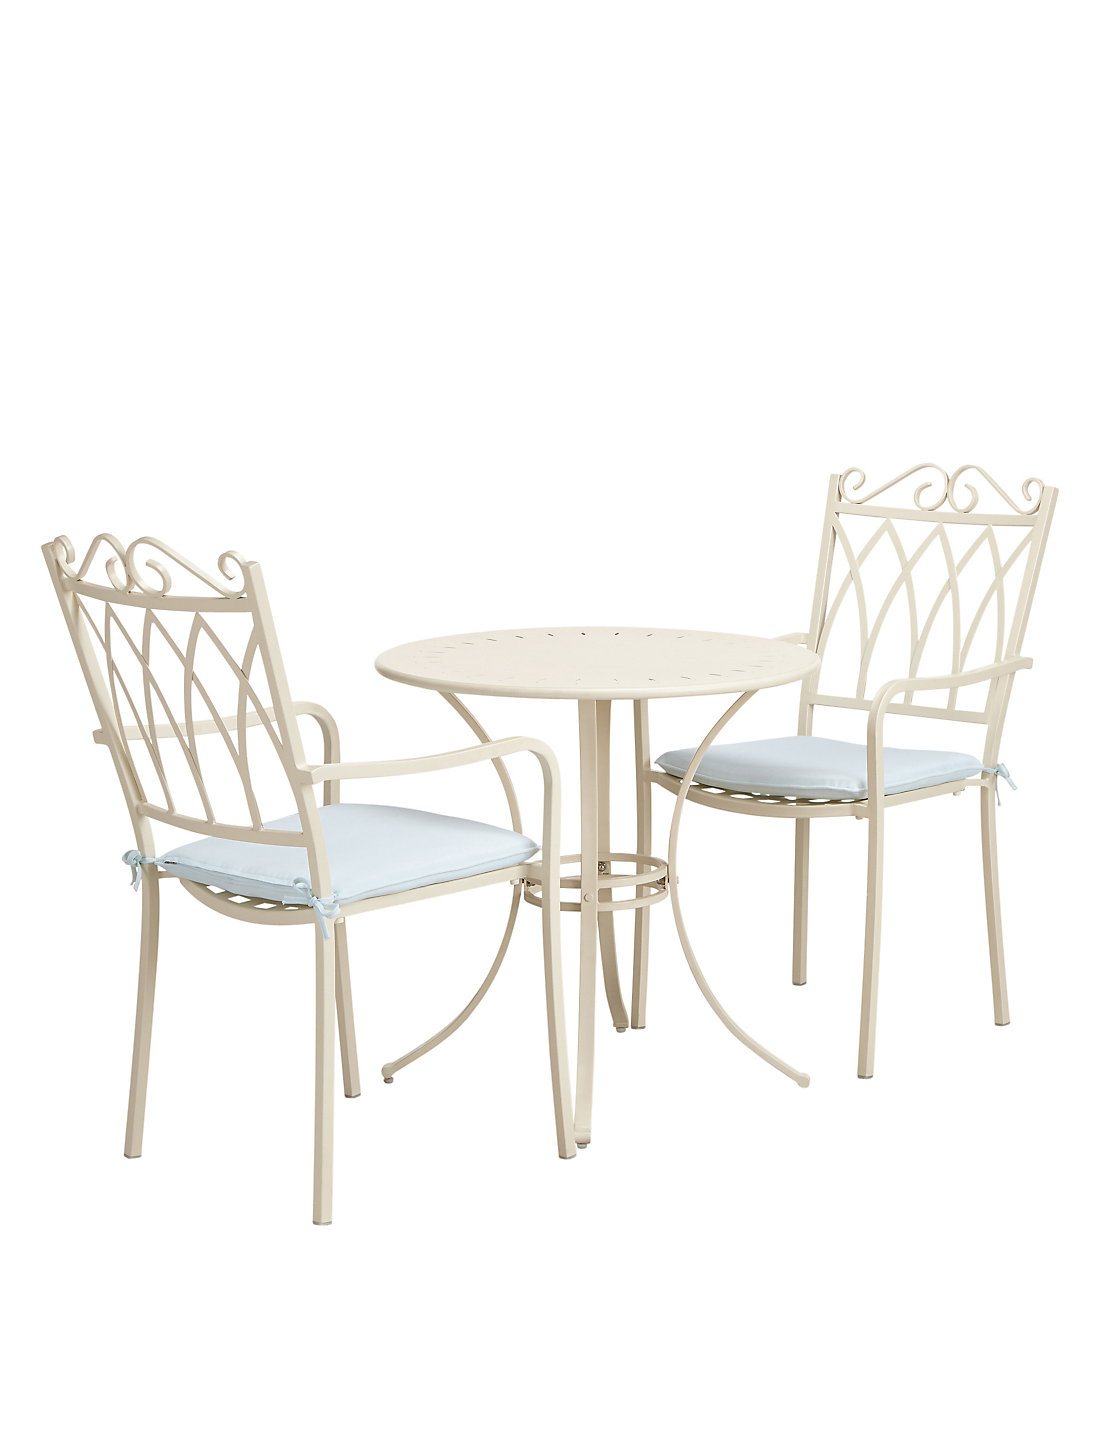 Picturesque Metal Garden Furniture  Metal Furniture  Ms With Hot Rosedale Table   Chairs  Cream With Lovely Holiday Inn London Covent Garden Also The Roof Top Gardens In Addition Garden Hilton Luton And Rattan Garden Furniture Covers As Well As Ainsley House And Gardens Additionally Indian Garden Crewe From Marksandspencercom With   Hot Metal Garden Furniture  Metal Furniture  Ms With Lovely Rosedale Table   Chairs  Cream And Picturesque Holiday Inn London Covent Garden Also The Roof Top Gardens In Addition Garden Hilton Luton From Marksandspencercom